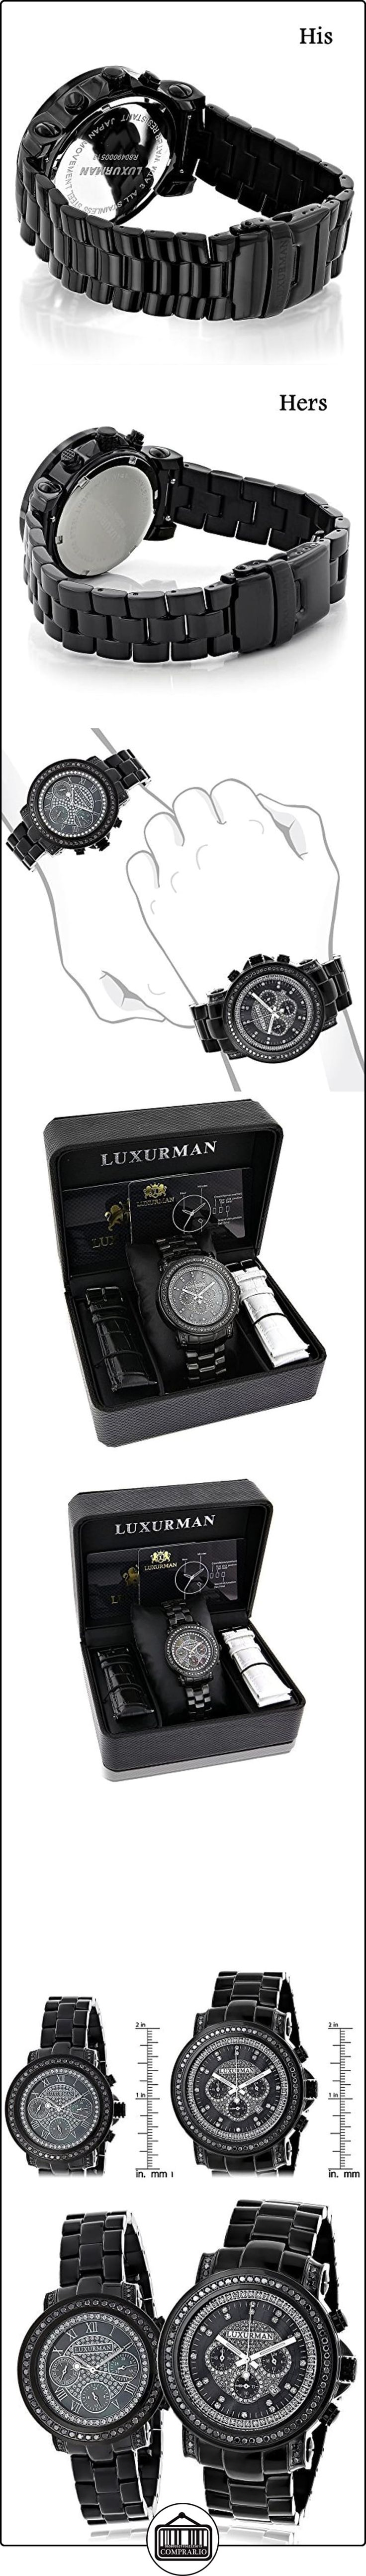 Large Matching His and Hers Watches: Black Diamond Watch Set by Luxurman 5.15ct  ✿ Relojes para mujer - (Lujo) ✿